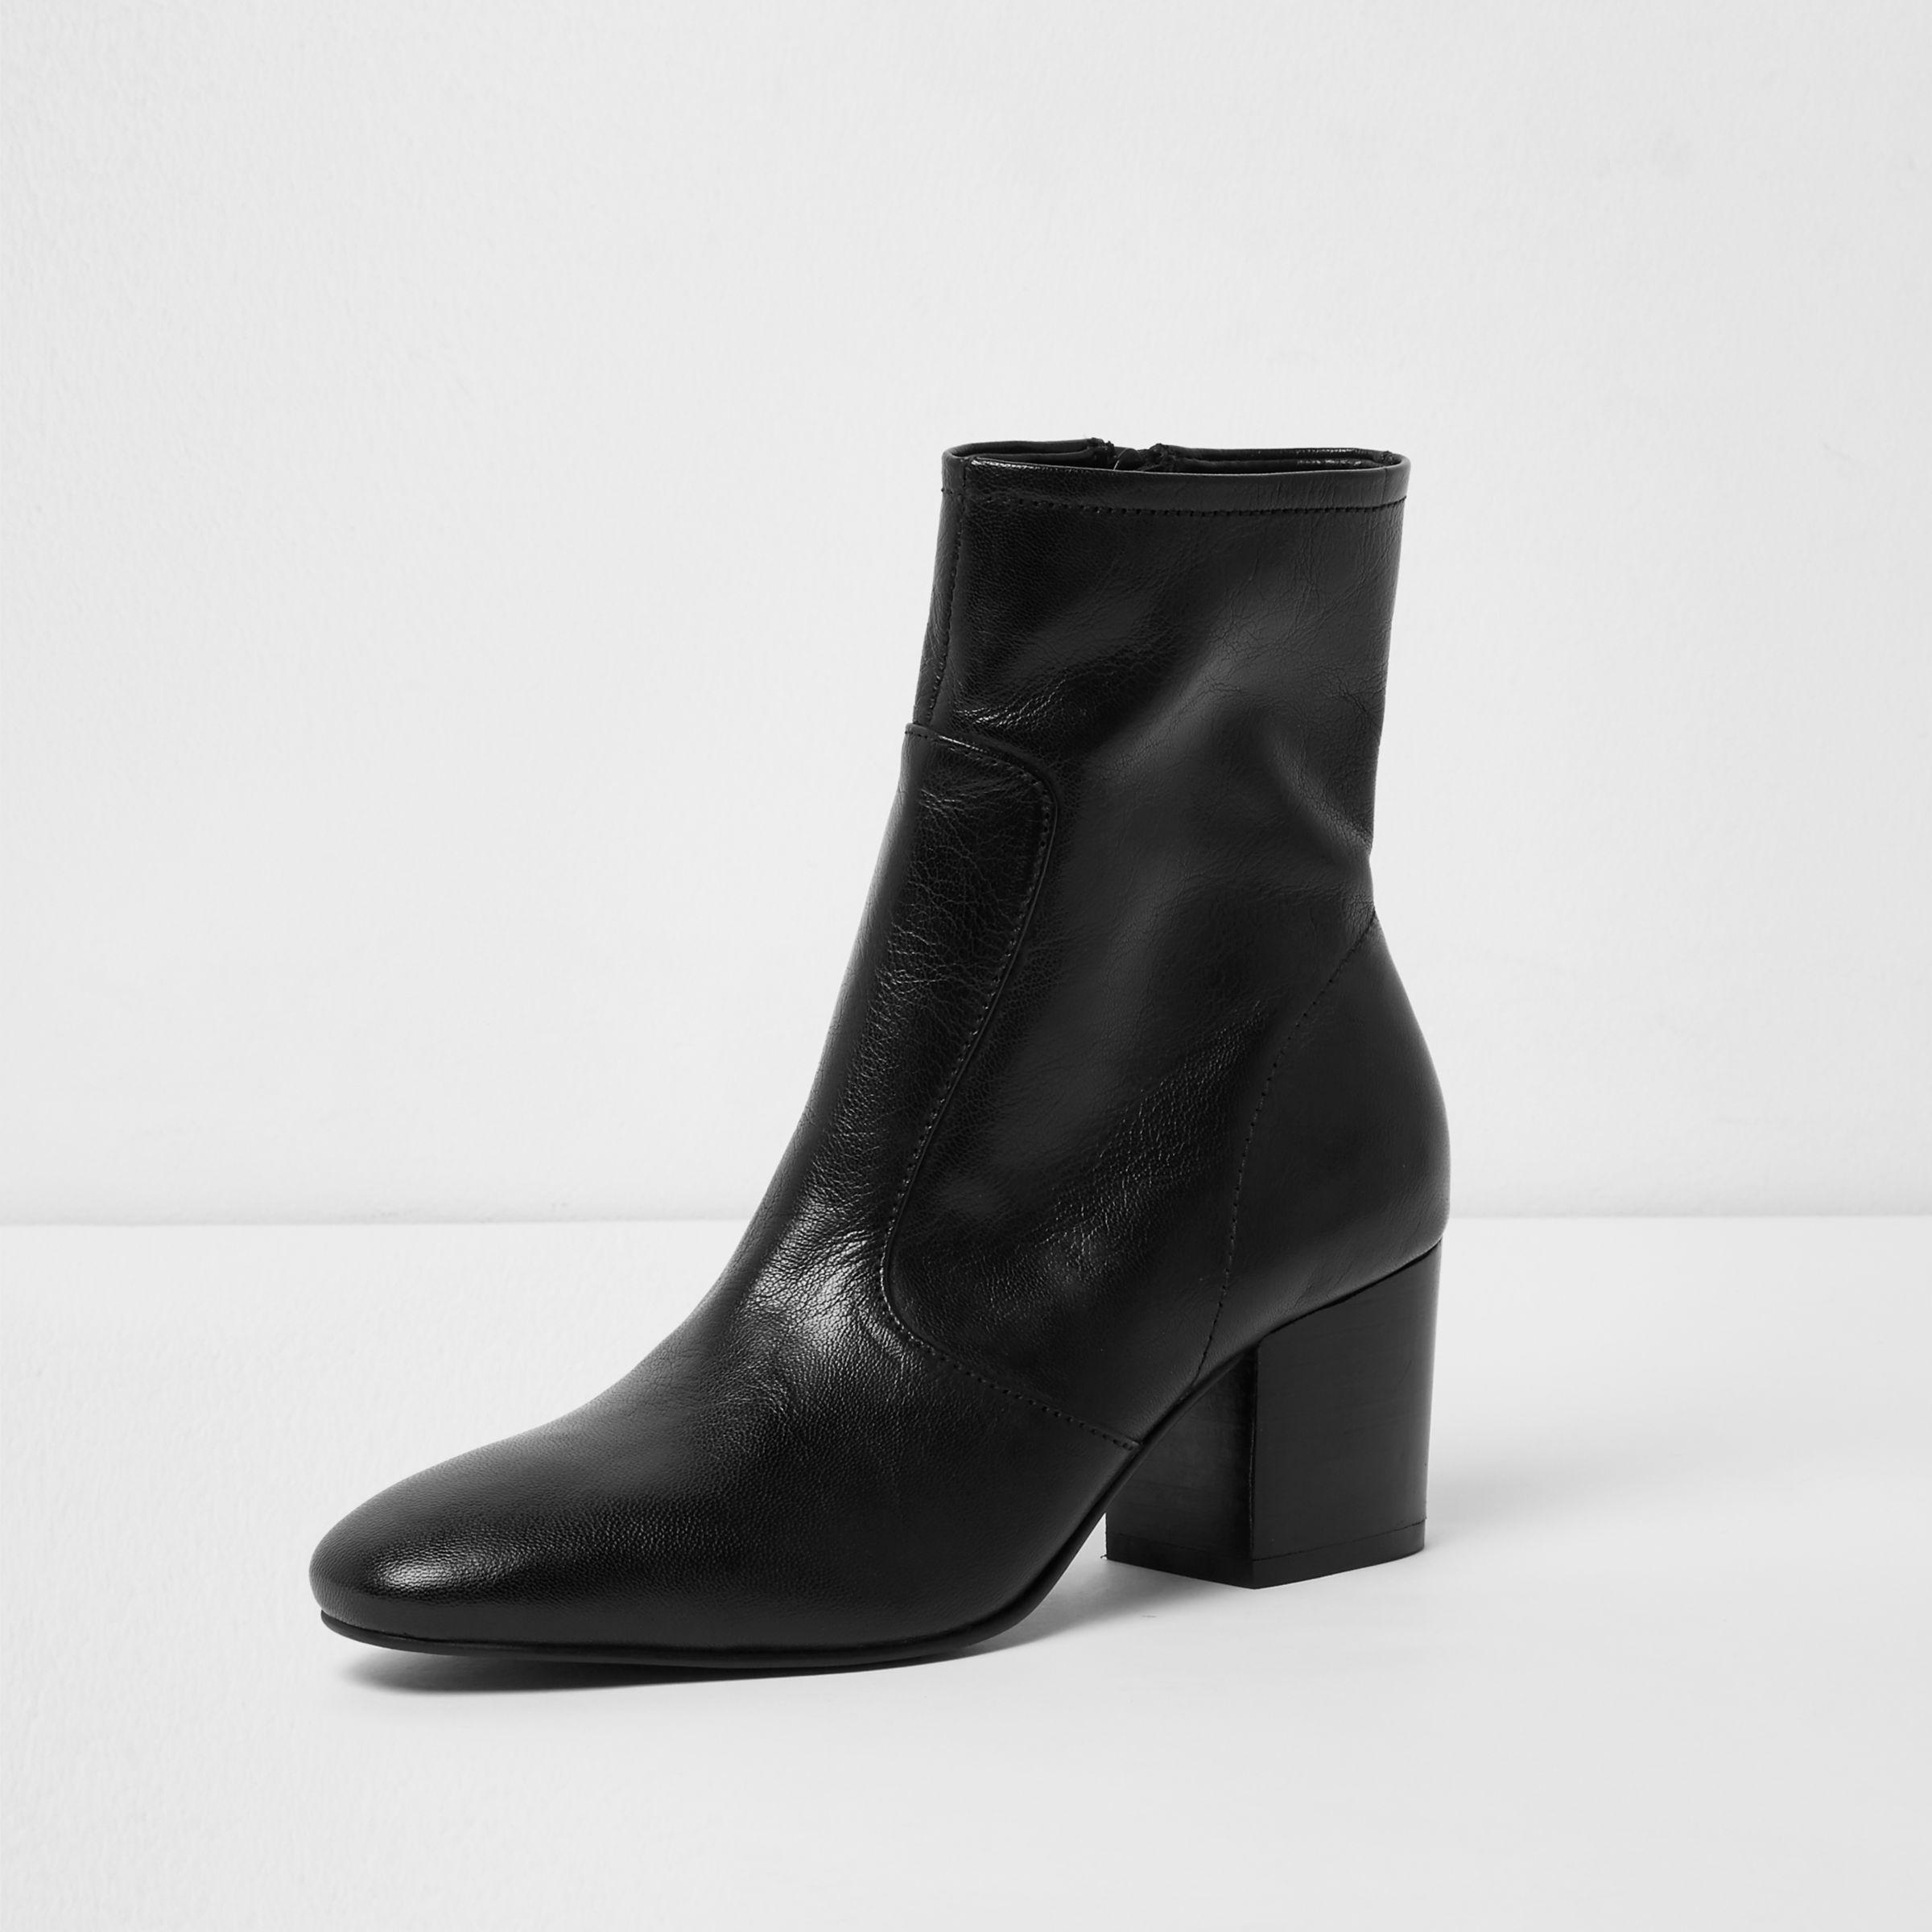 b02ee9ce05a0 River Island Black Leather Sock Block Heel Ankle Boots in Black - Lyst